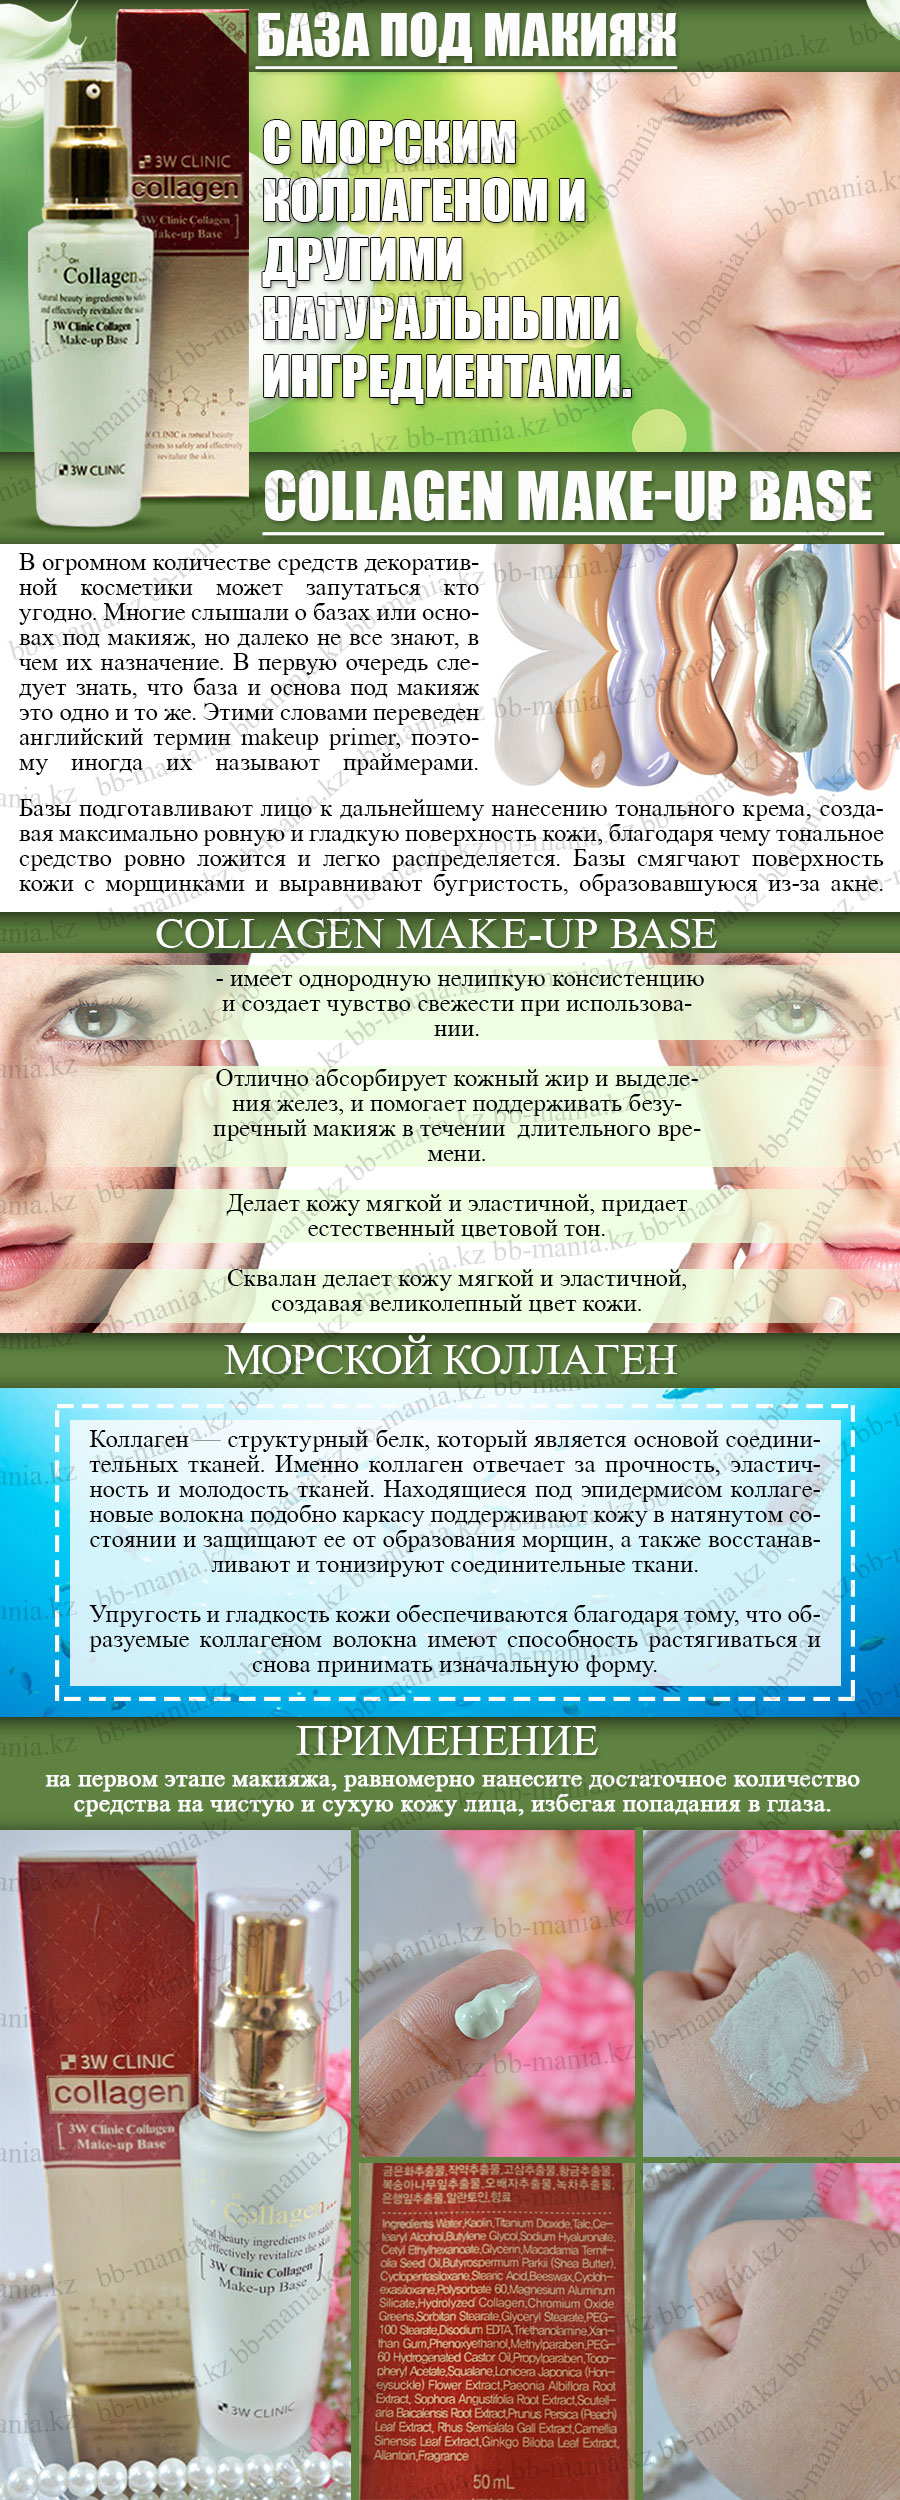 Collagen Make-Up Base [3W CLINIC] - Картинка